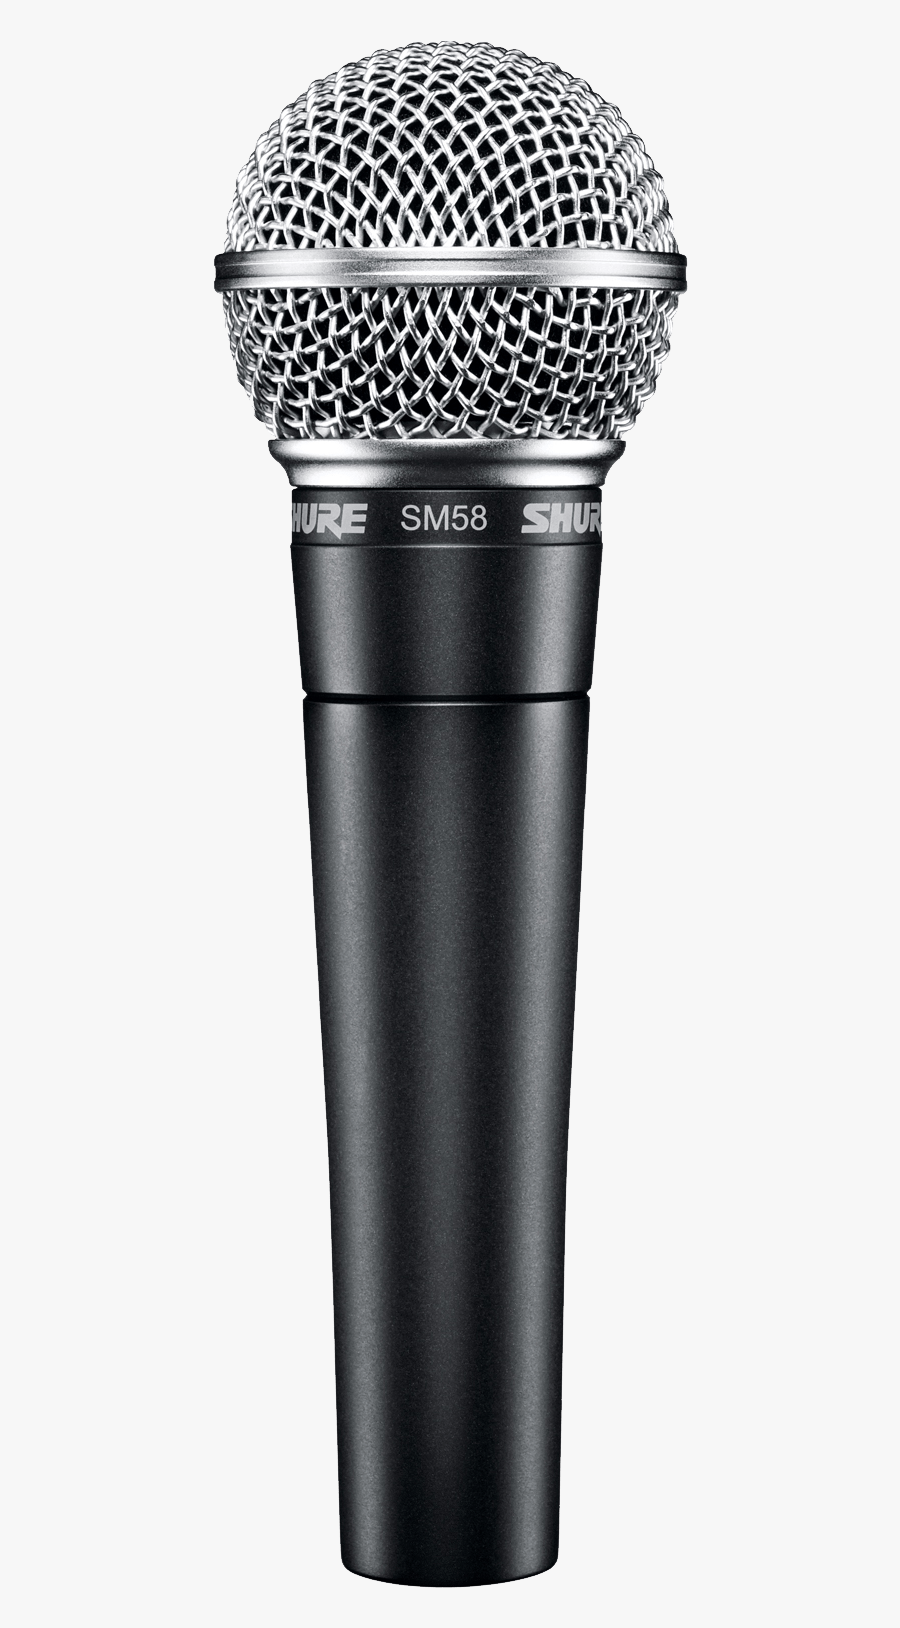 Sm58 Shure Microphone.